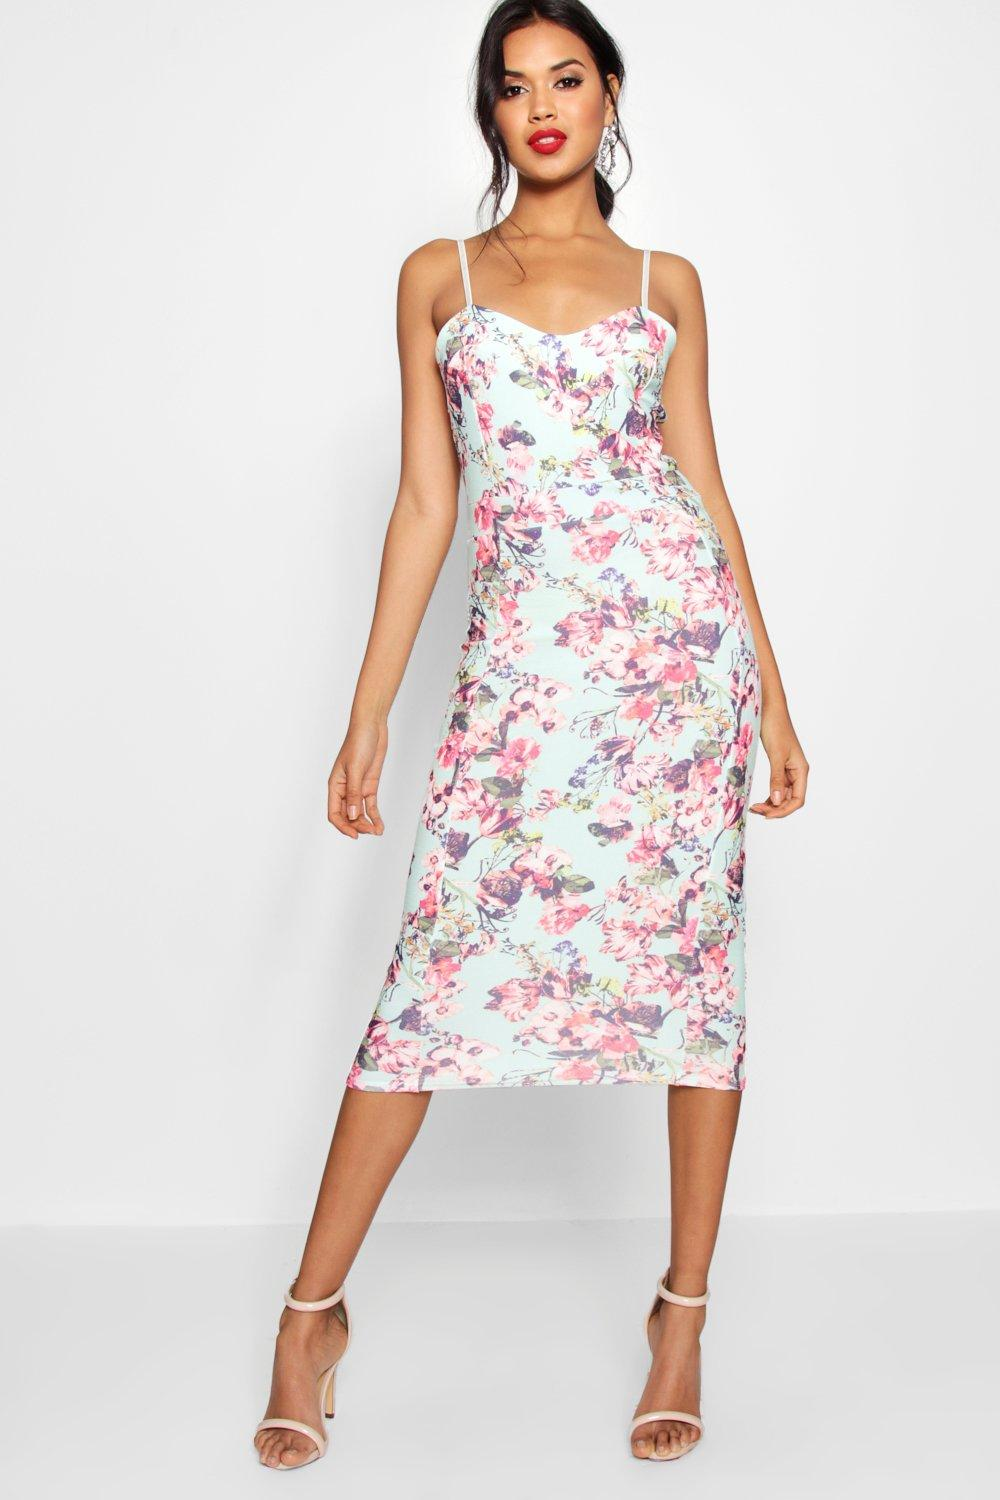 27cdab77dc55 ... Floral Print Strappy Midi Bodycon Dress. Hover to zoom